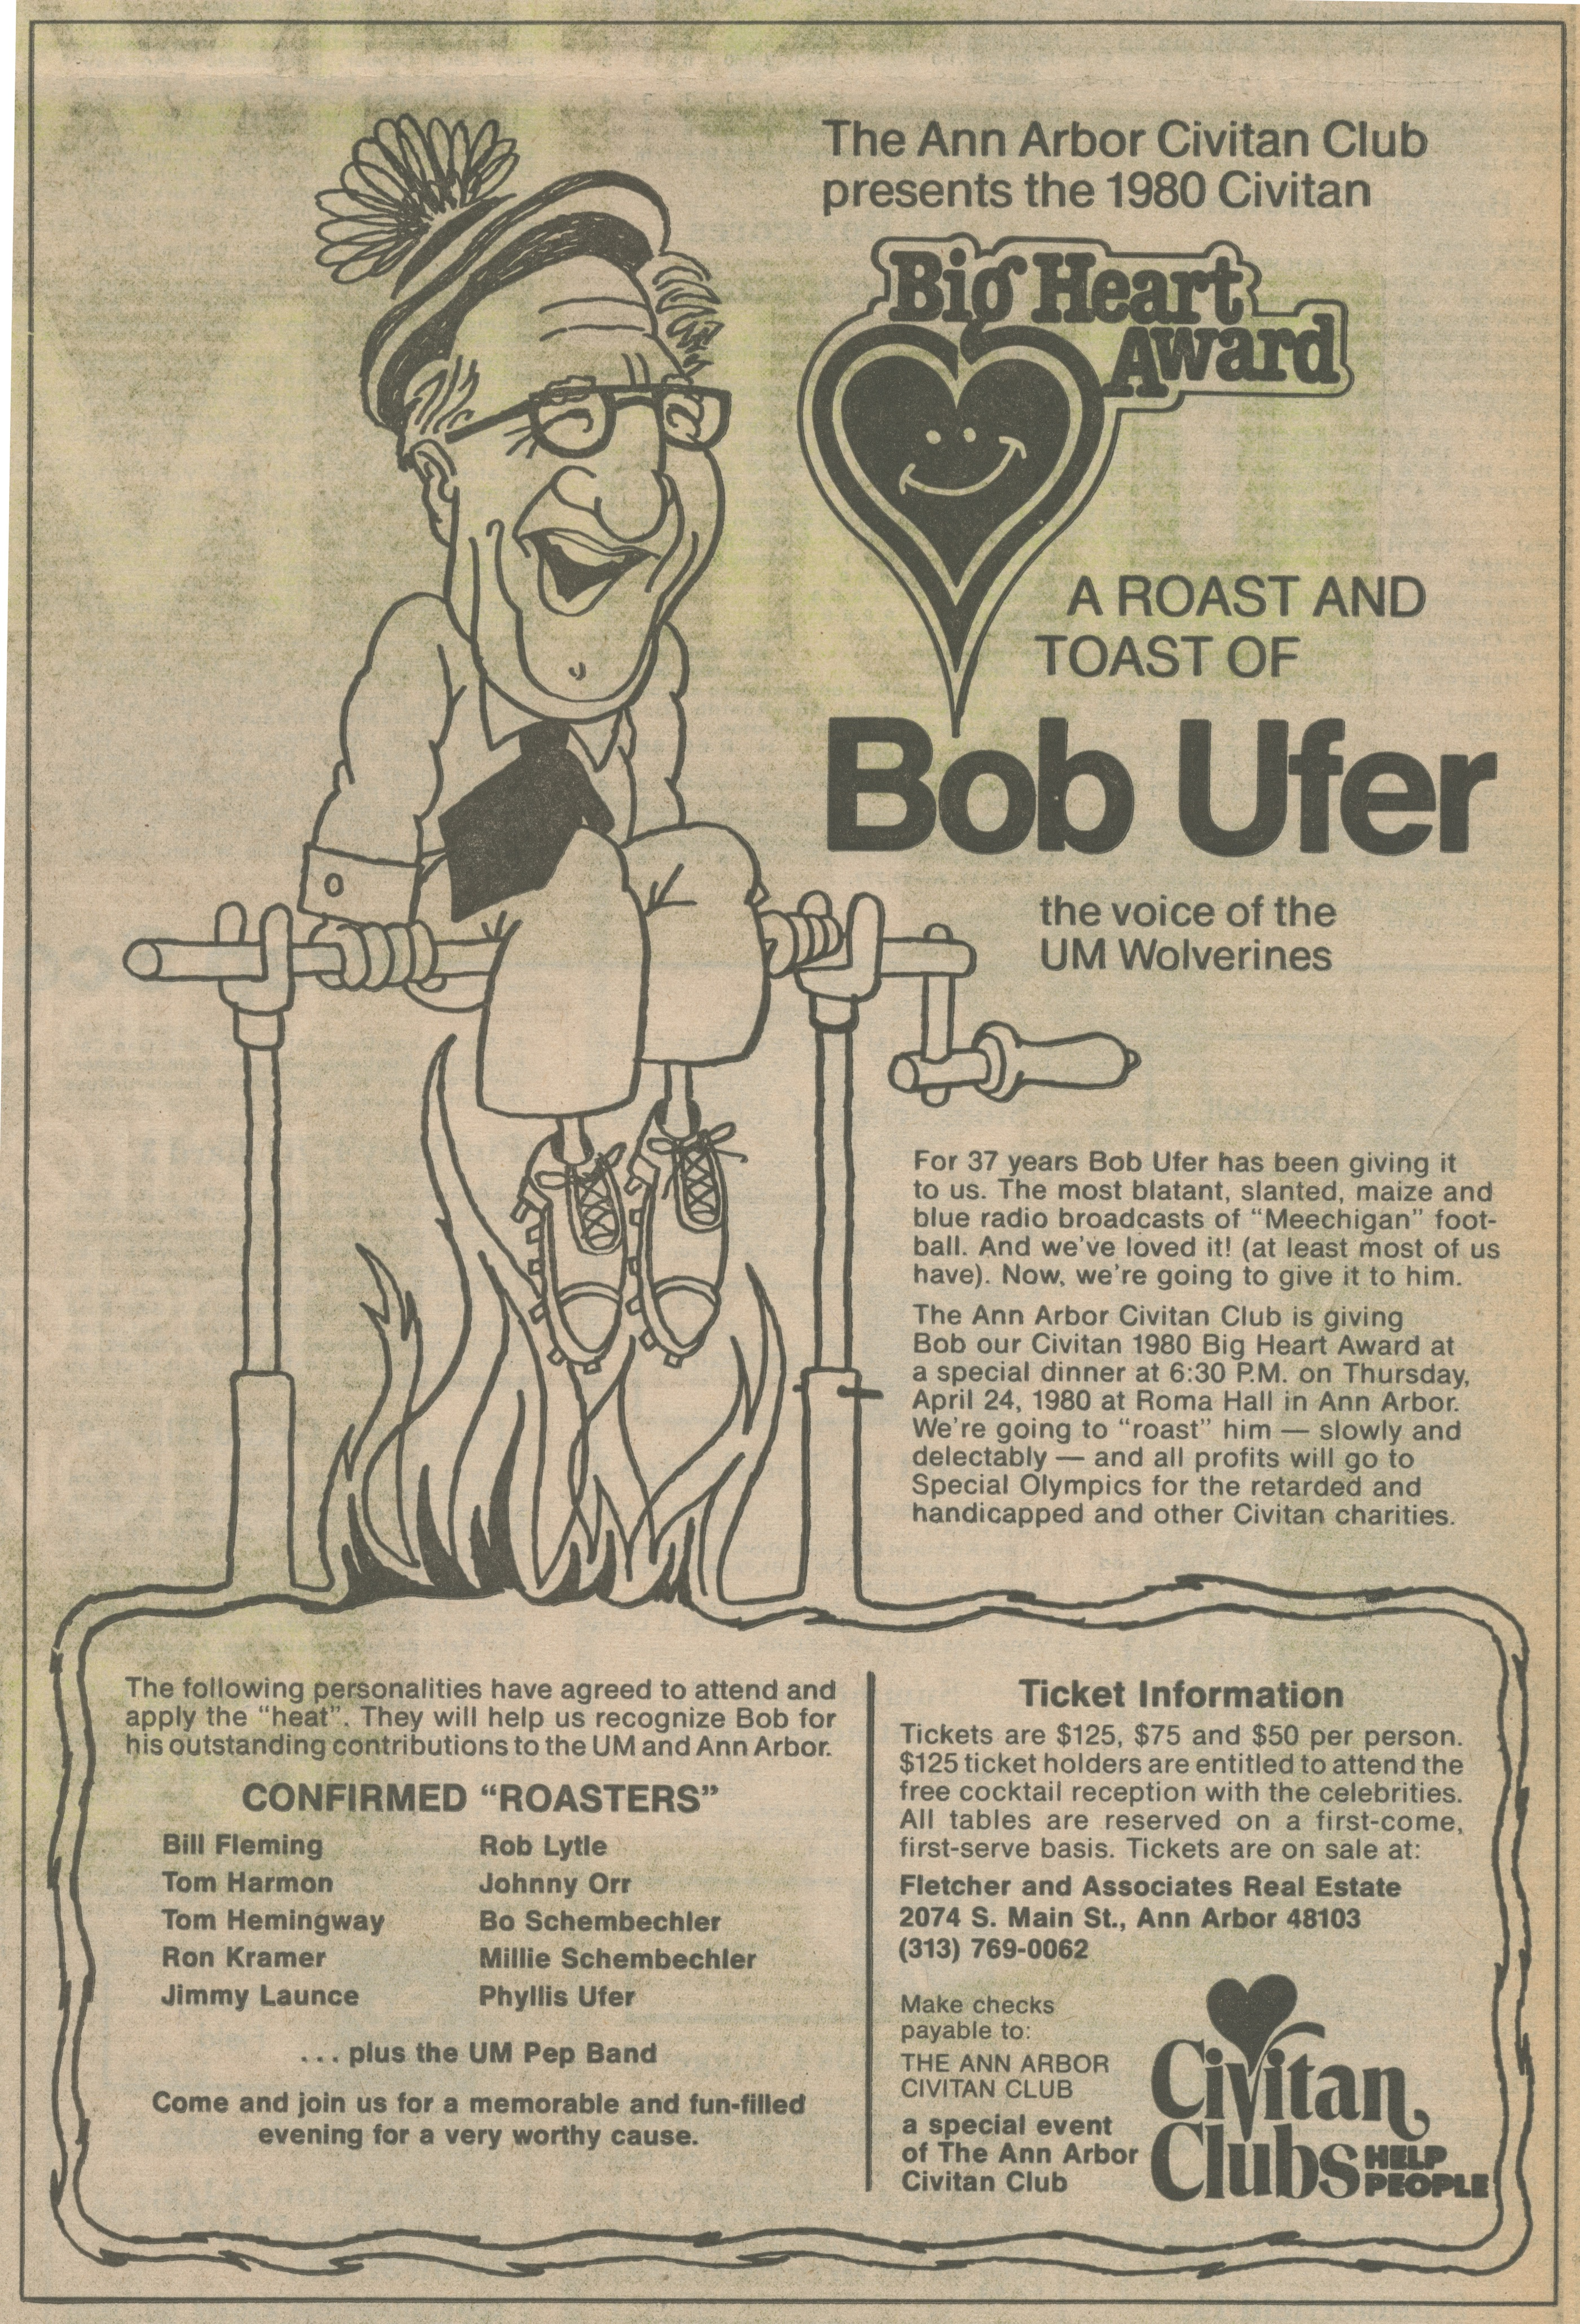 Big Heart Award ~ A Roast And Toast Of Bob Ufer image